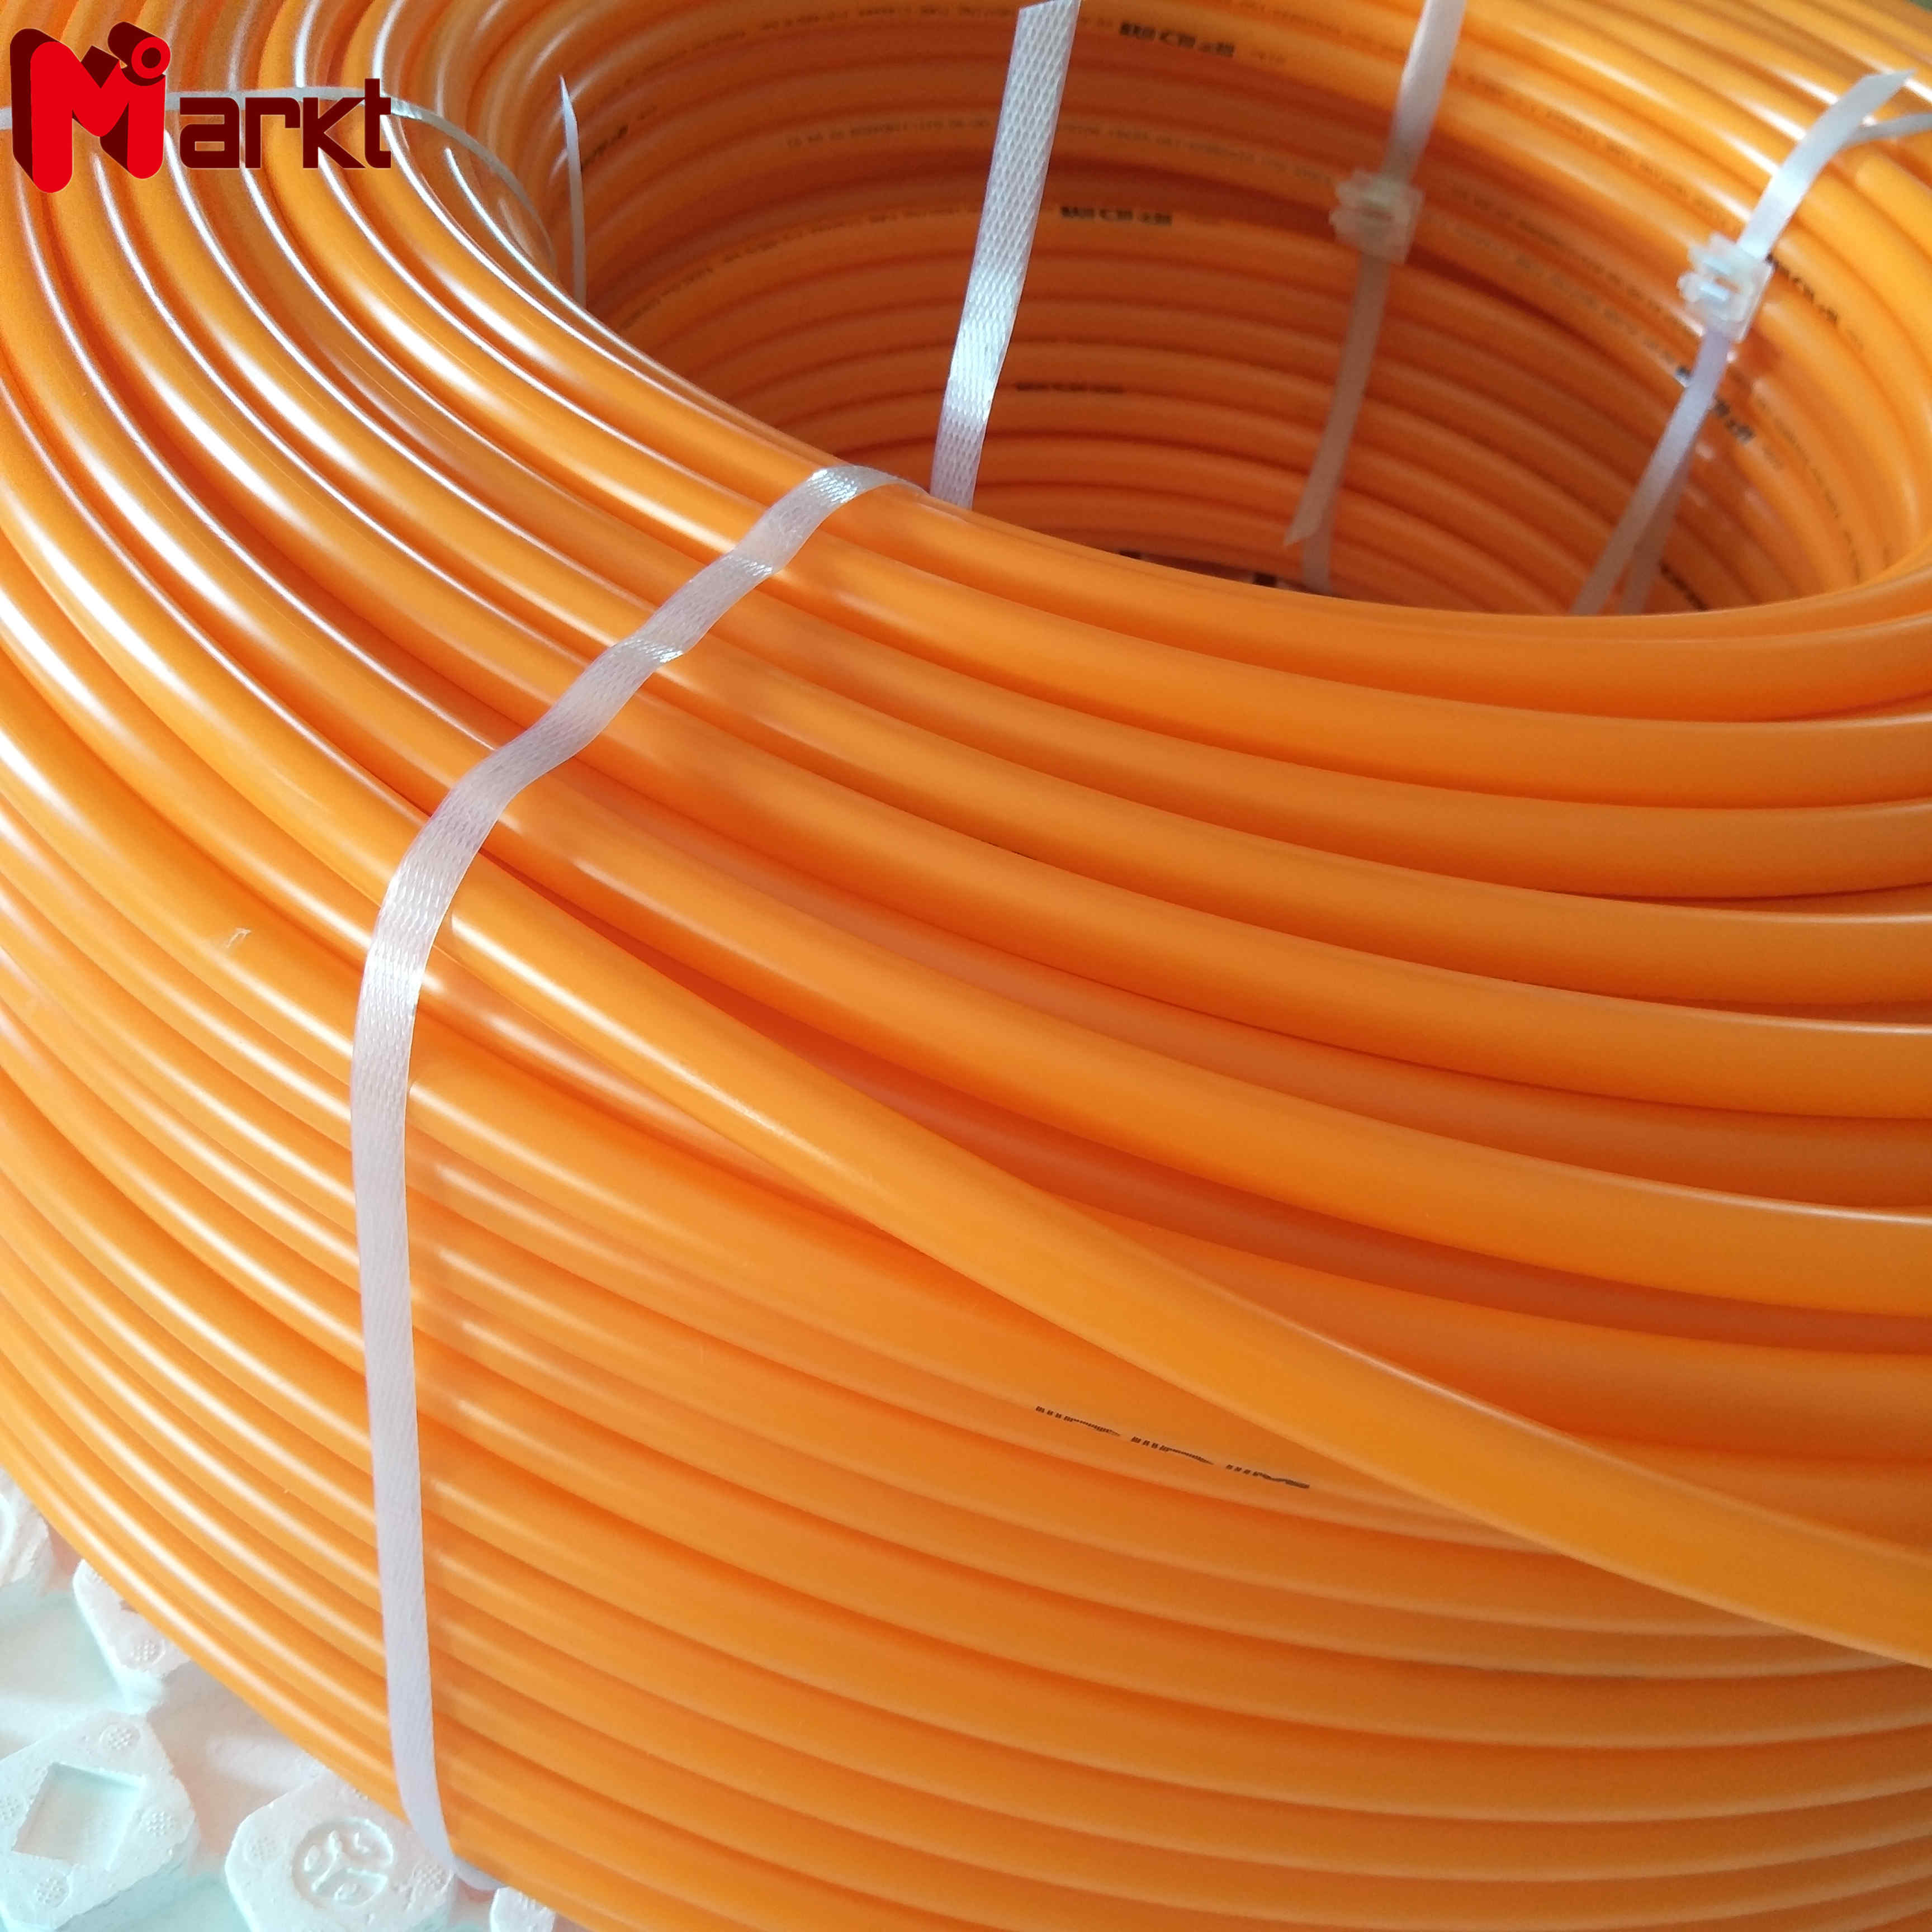 Good quality plastic orange pert pipe for heating systems